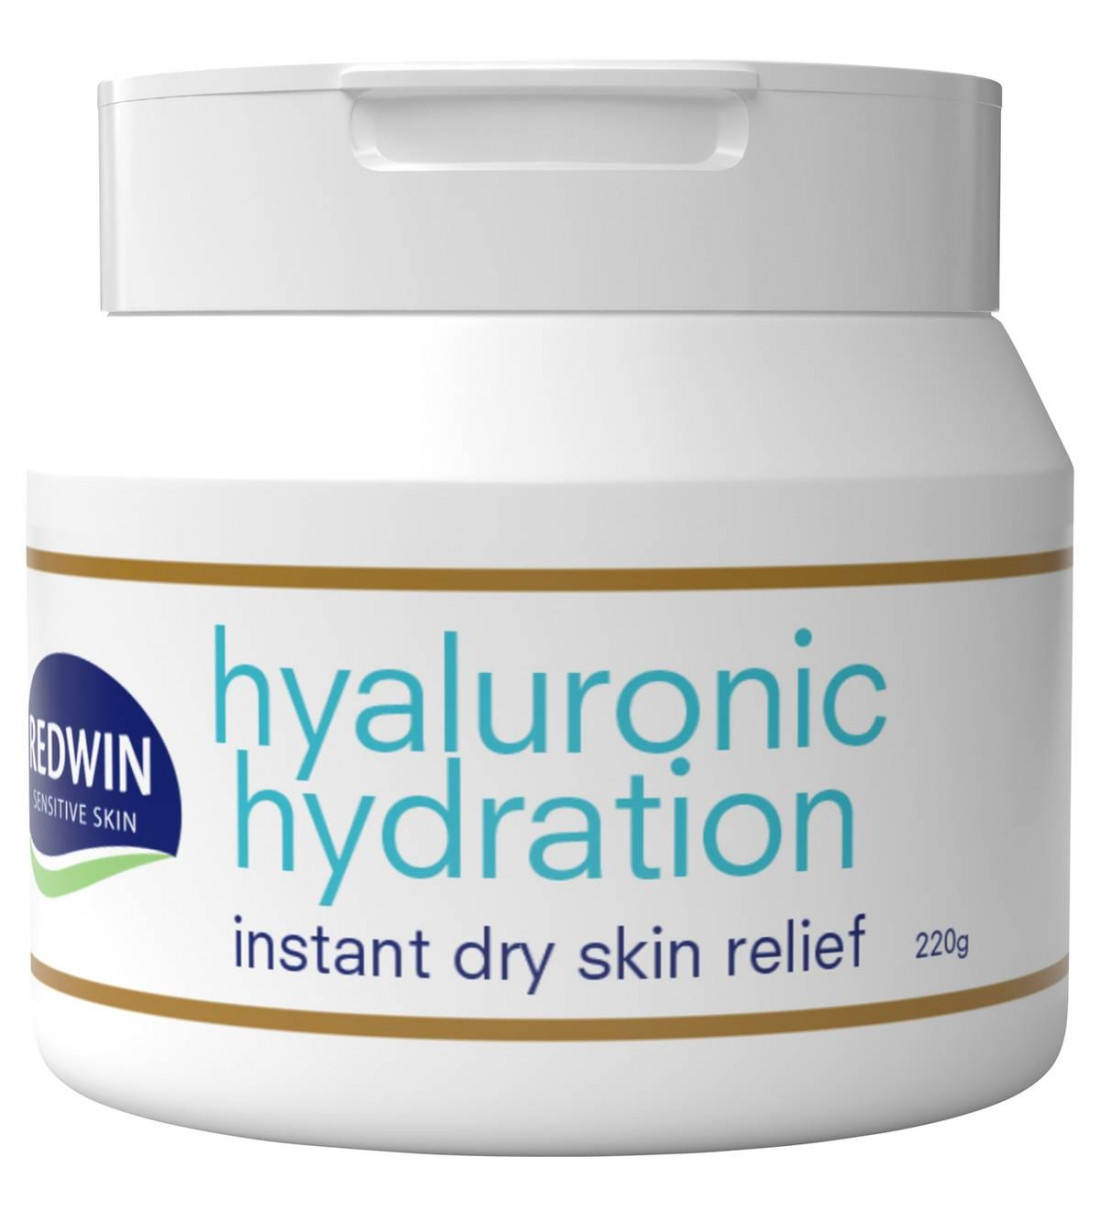 Redwin Hyaluronic Hydration Instant Dry Skin Relief